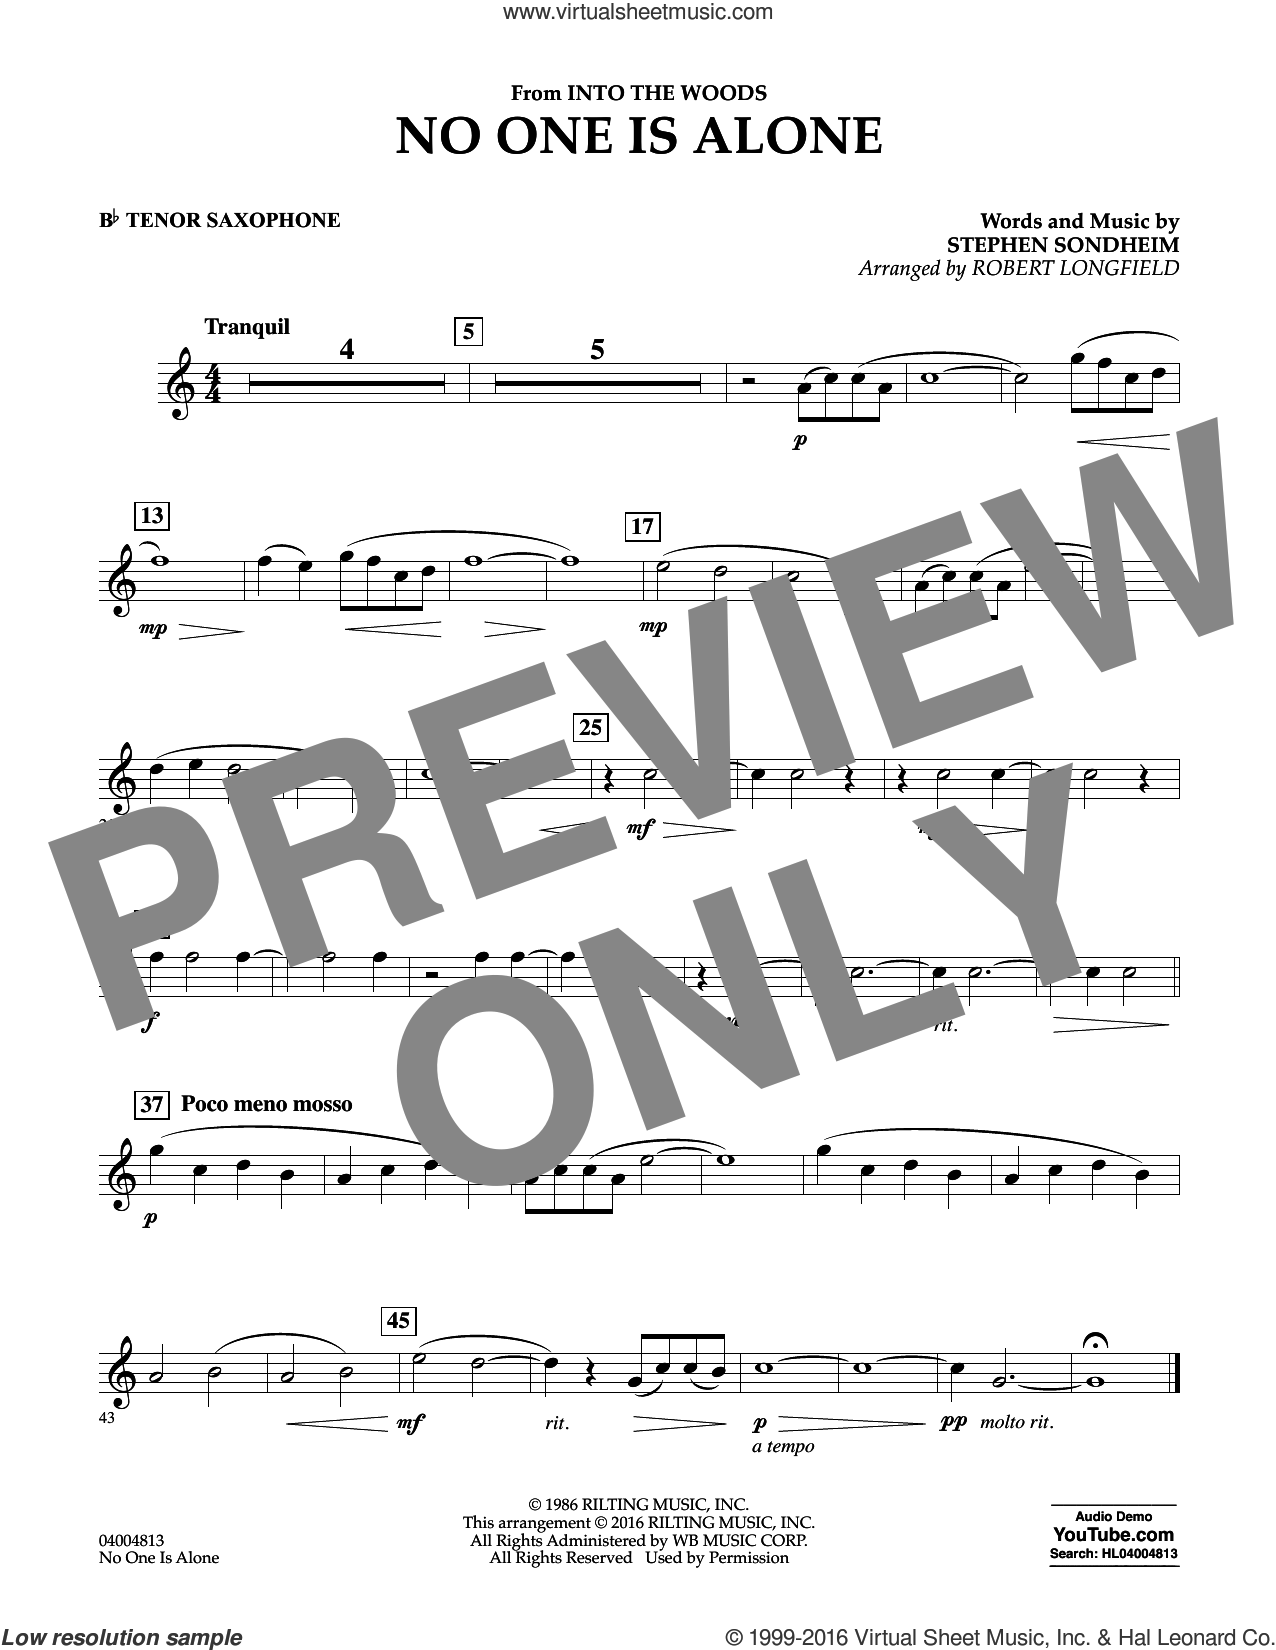 No One Is Alone sheet music for concert band (Bb tenor saxophone) by Stephen Sondheim and Robert Longfield, intermediate skill level